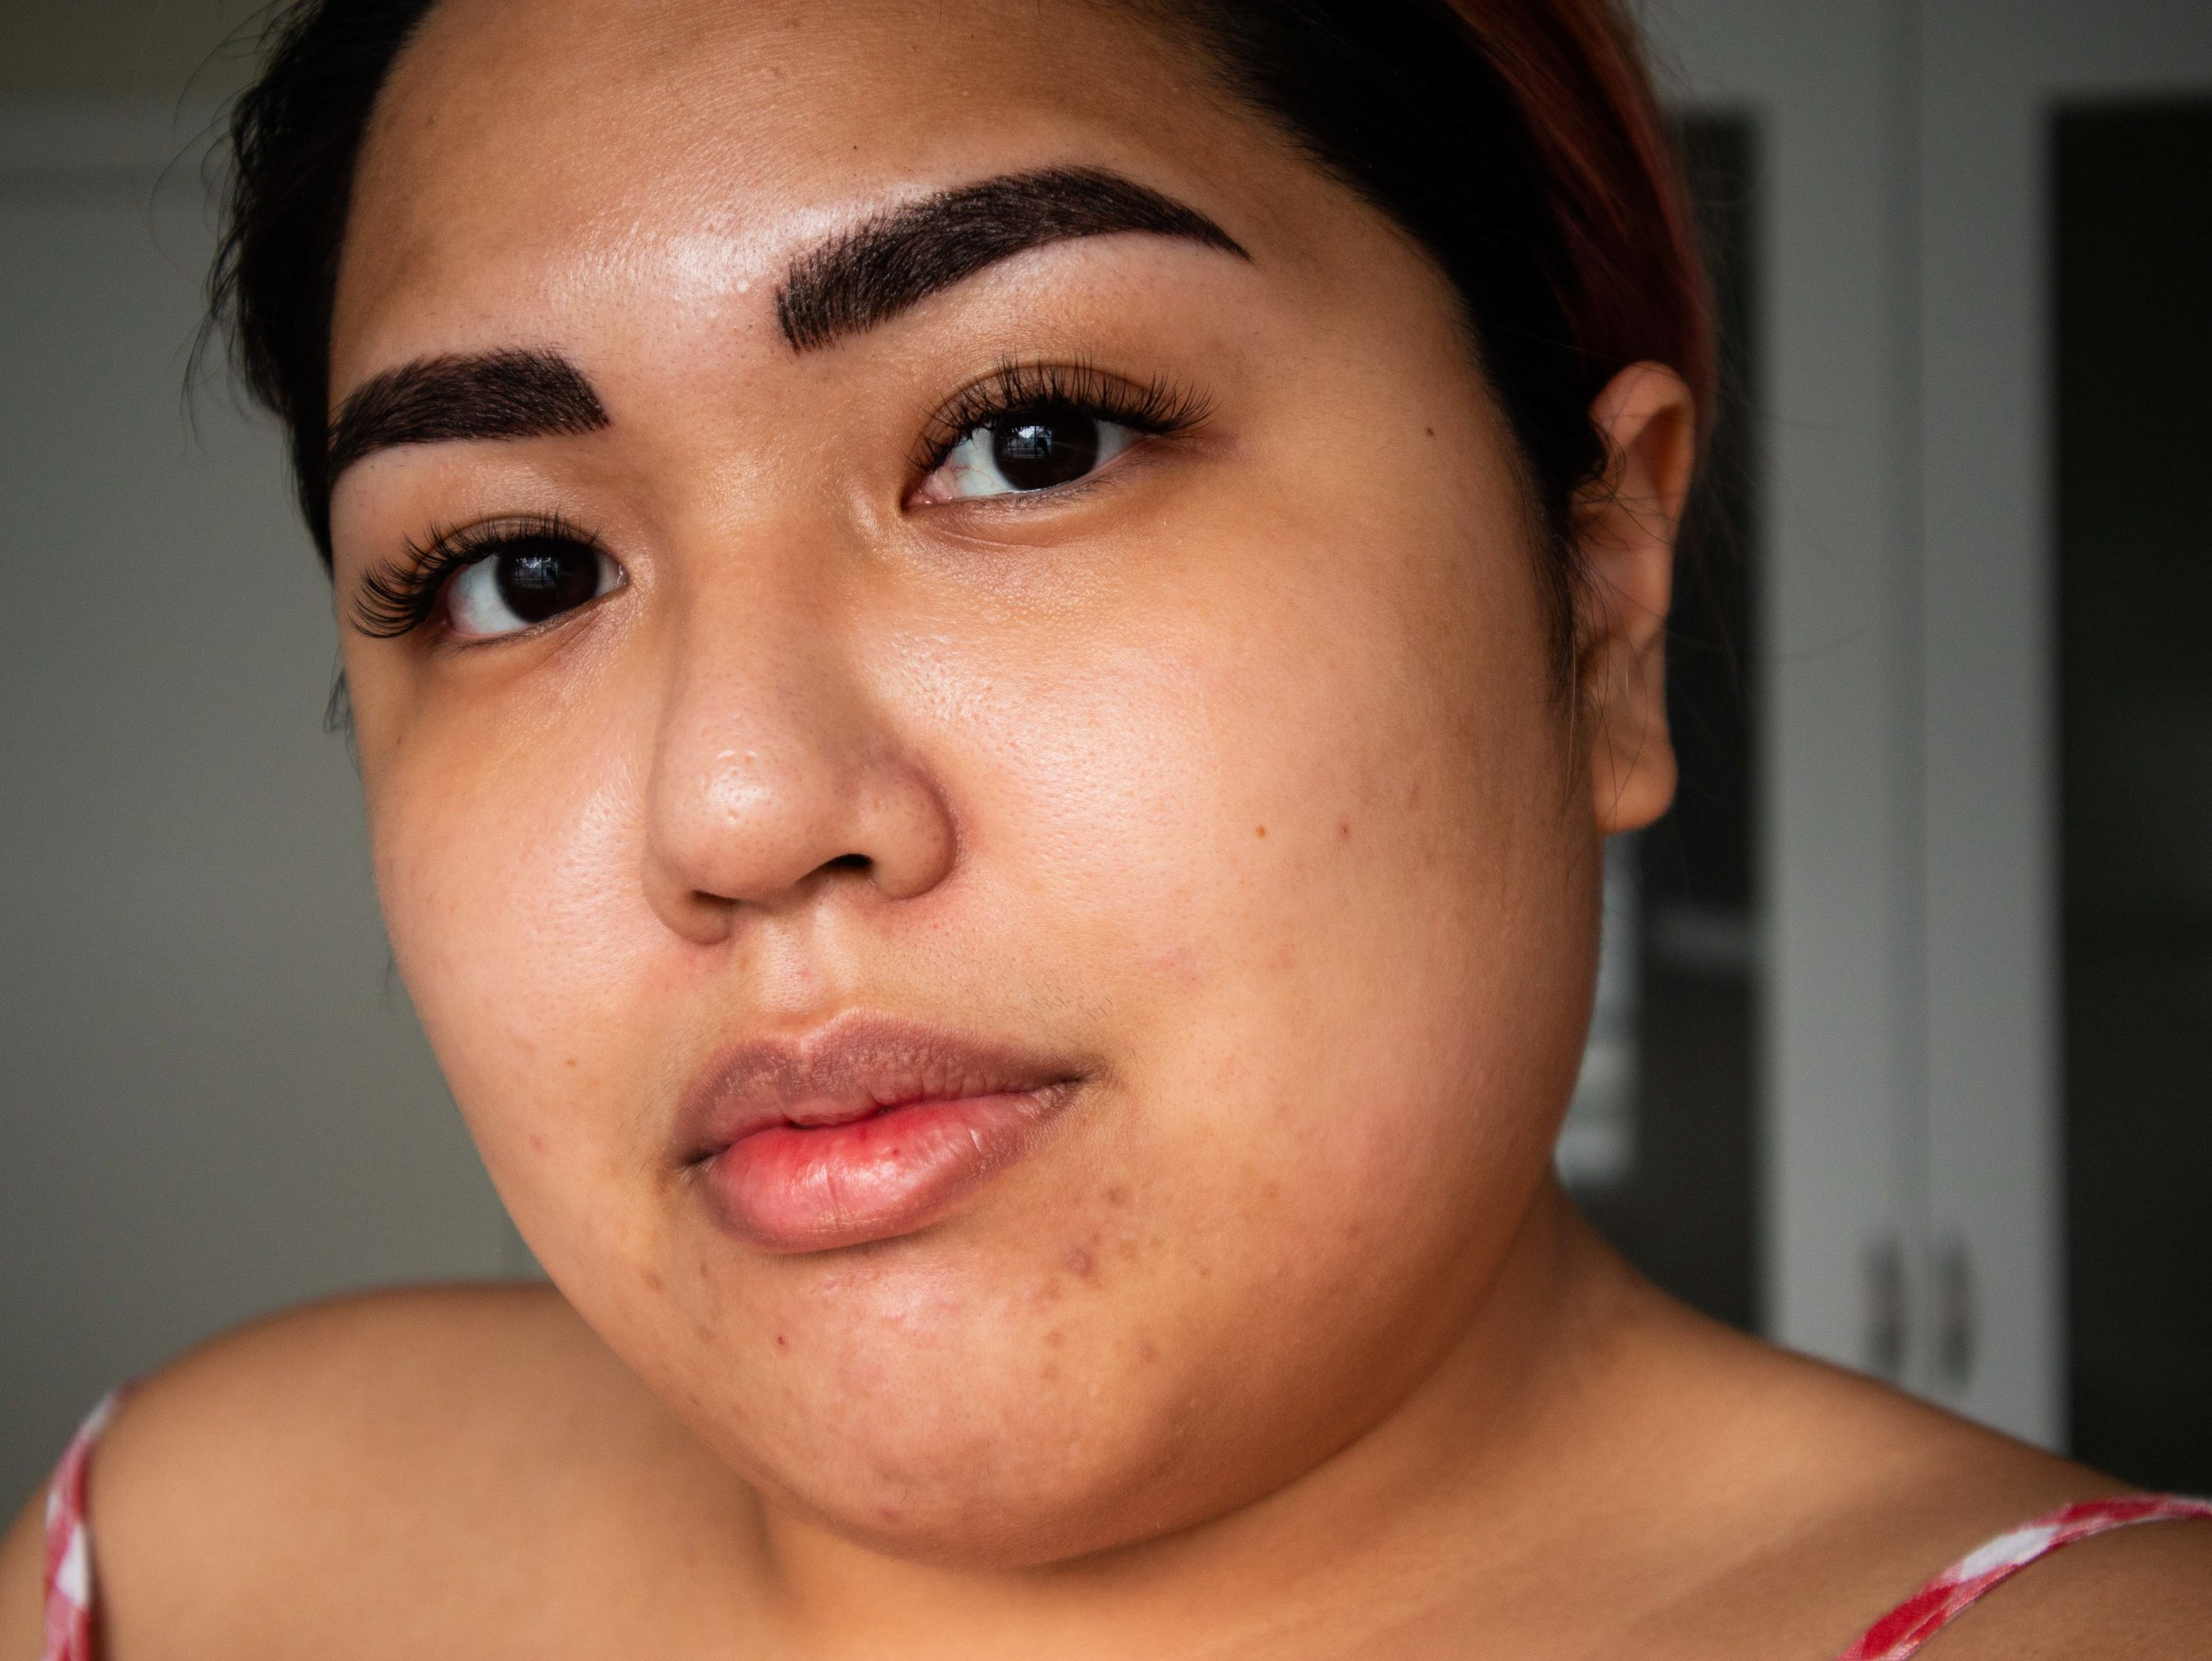 Bare faced with freshly-microbladed brows and new lash extensions